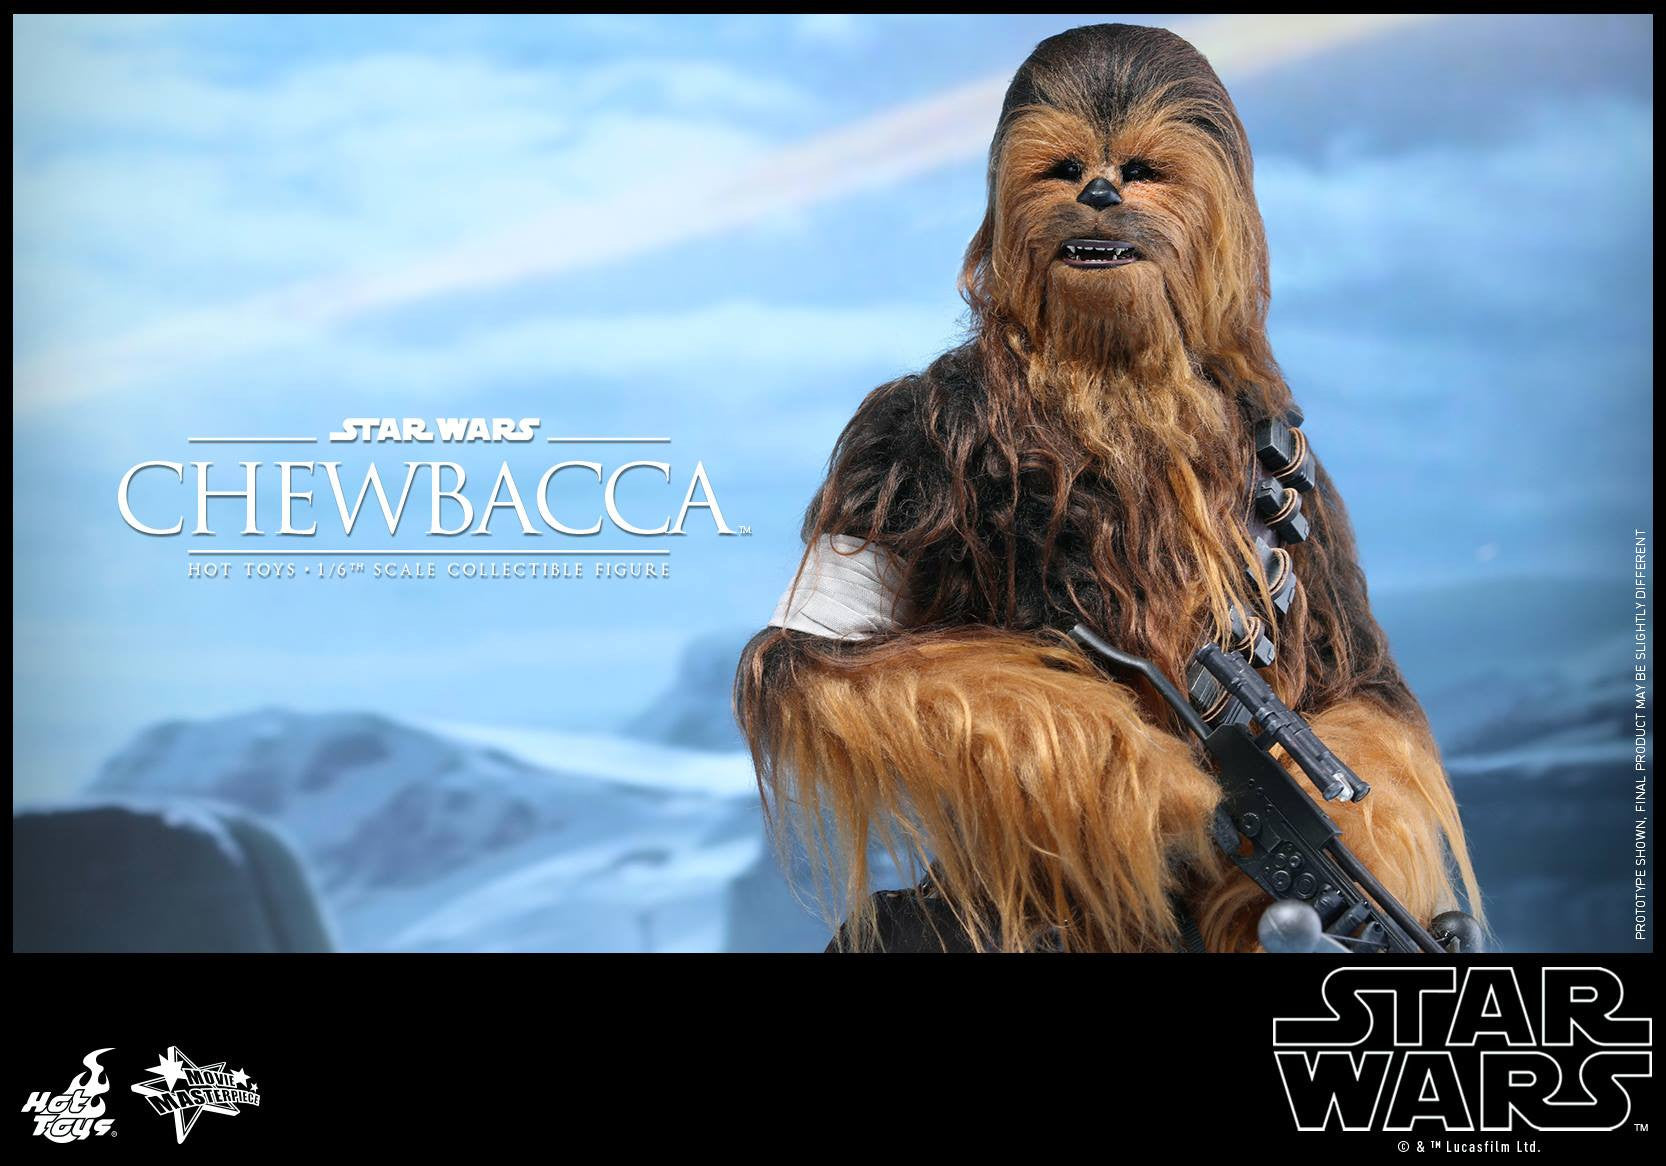 Hot Toys - MMS375 - Star Wars: The Force Awakens - Chewbacca - Marvelous Toys - 10